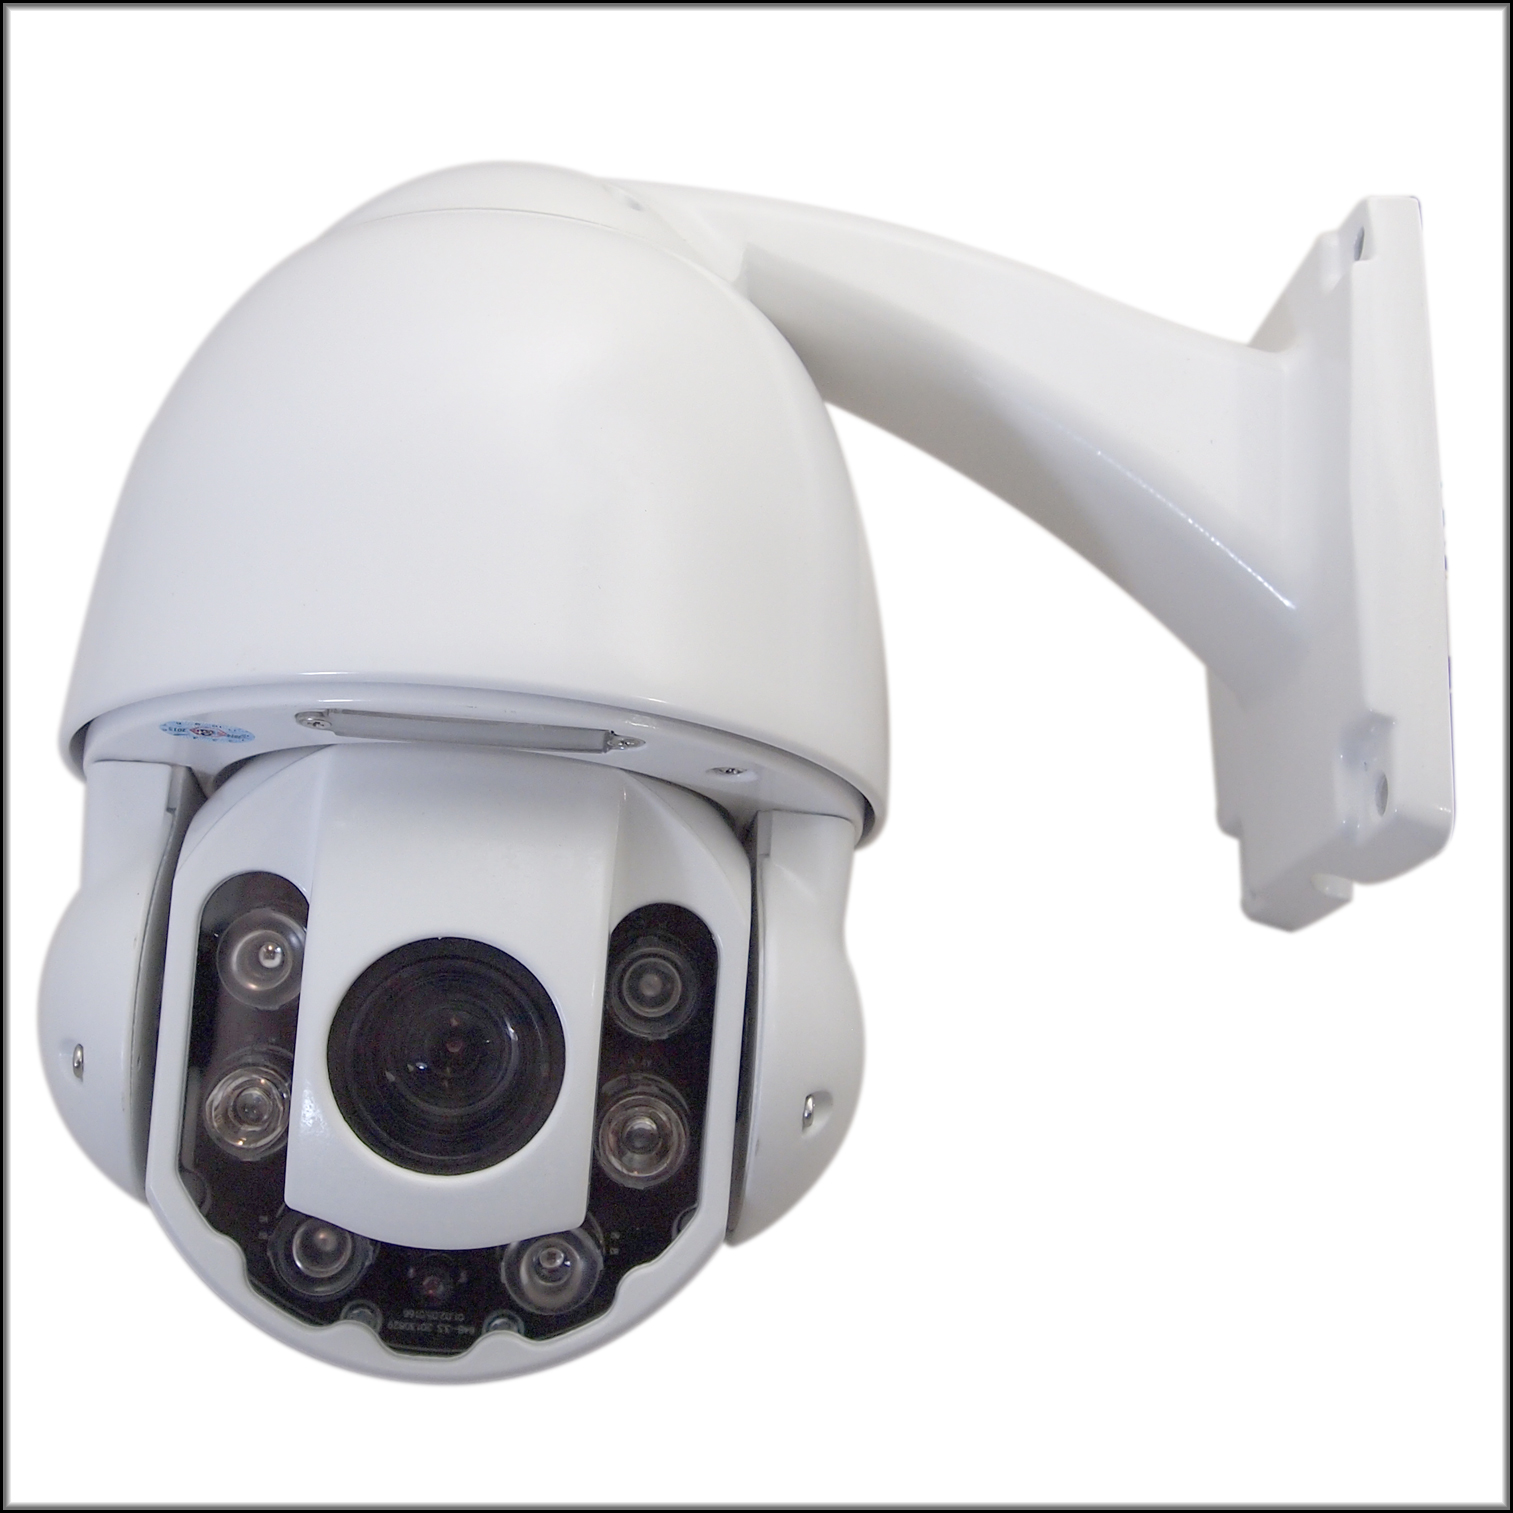 Speed Dome/PTZ Security Cameras and Controller